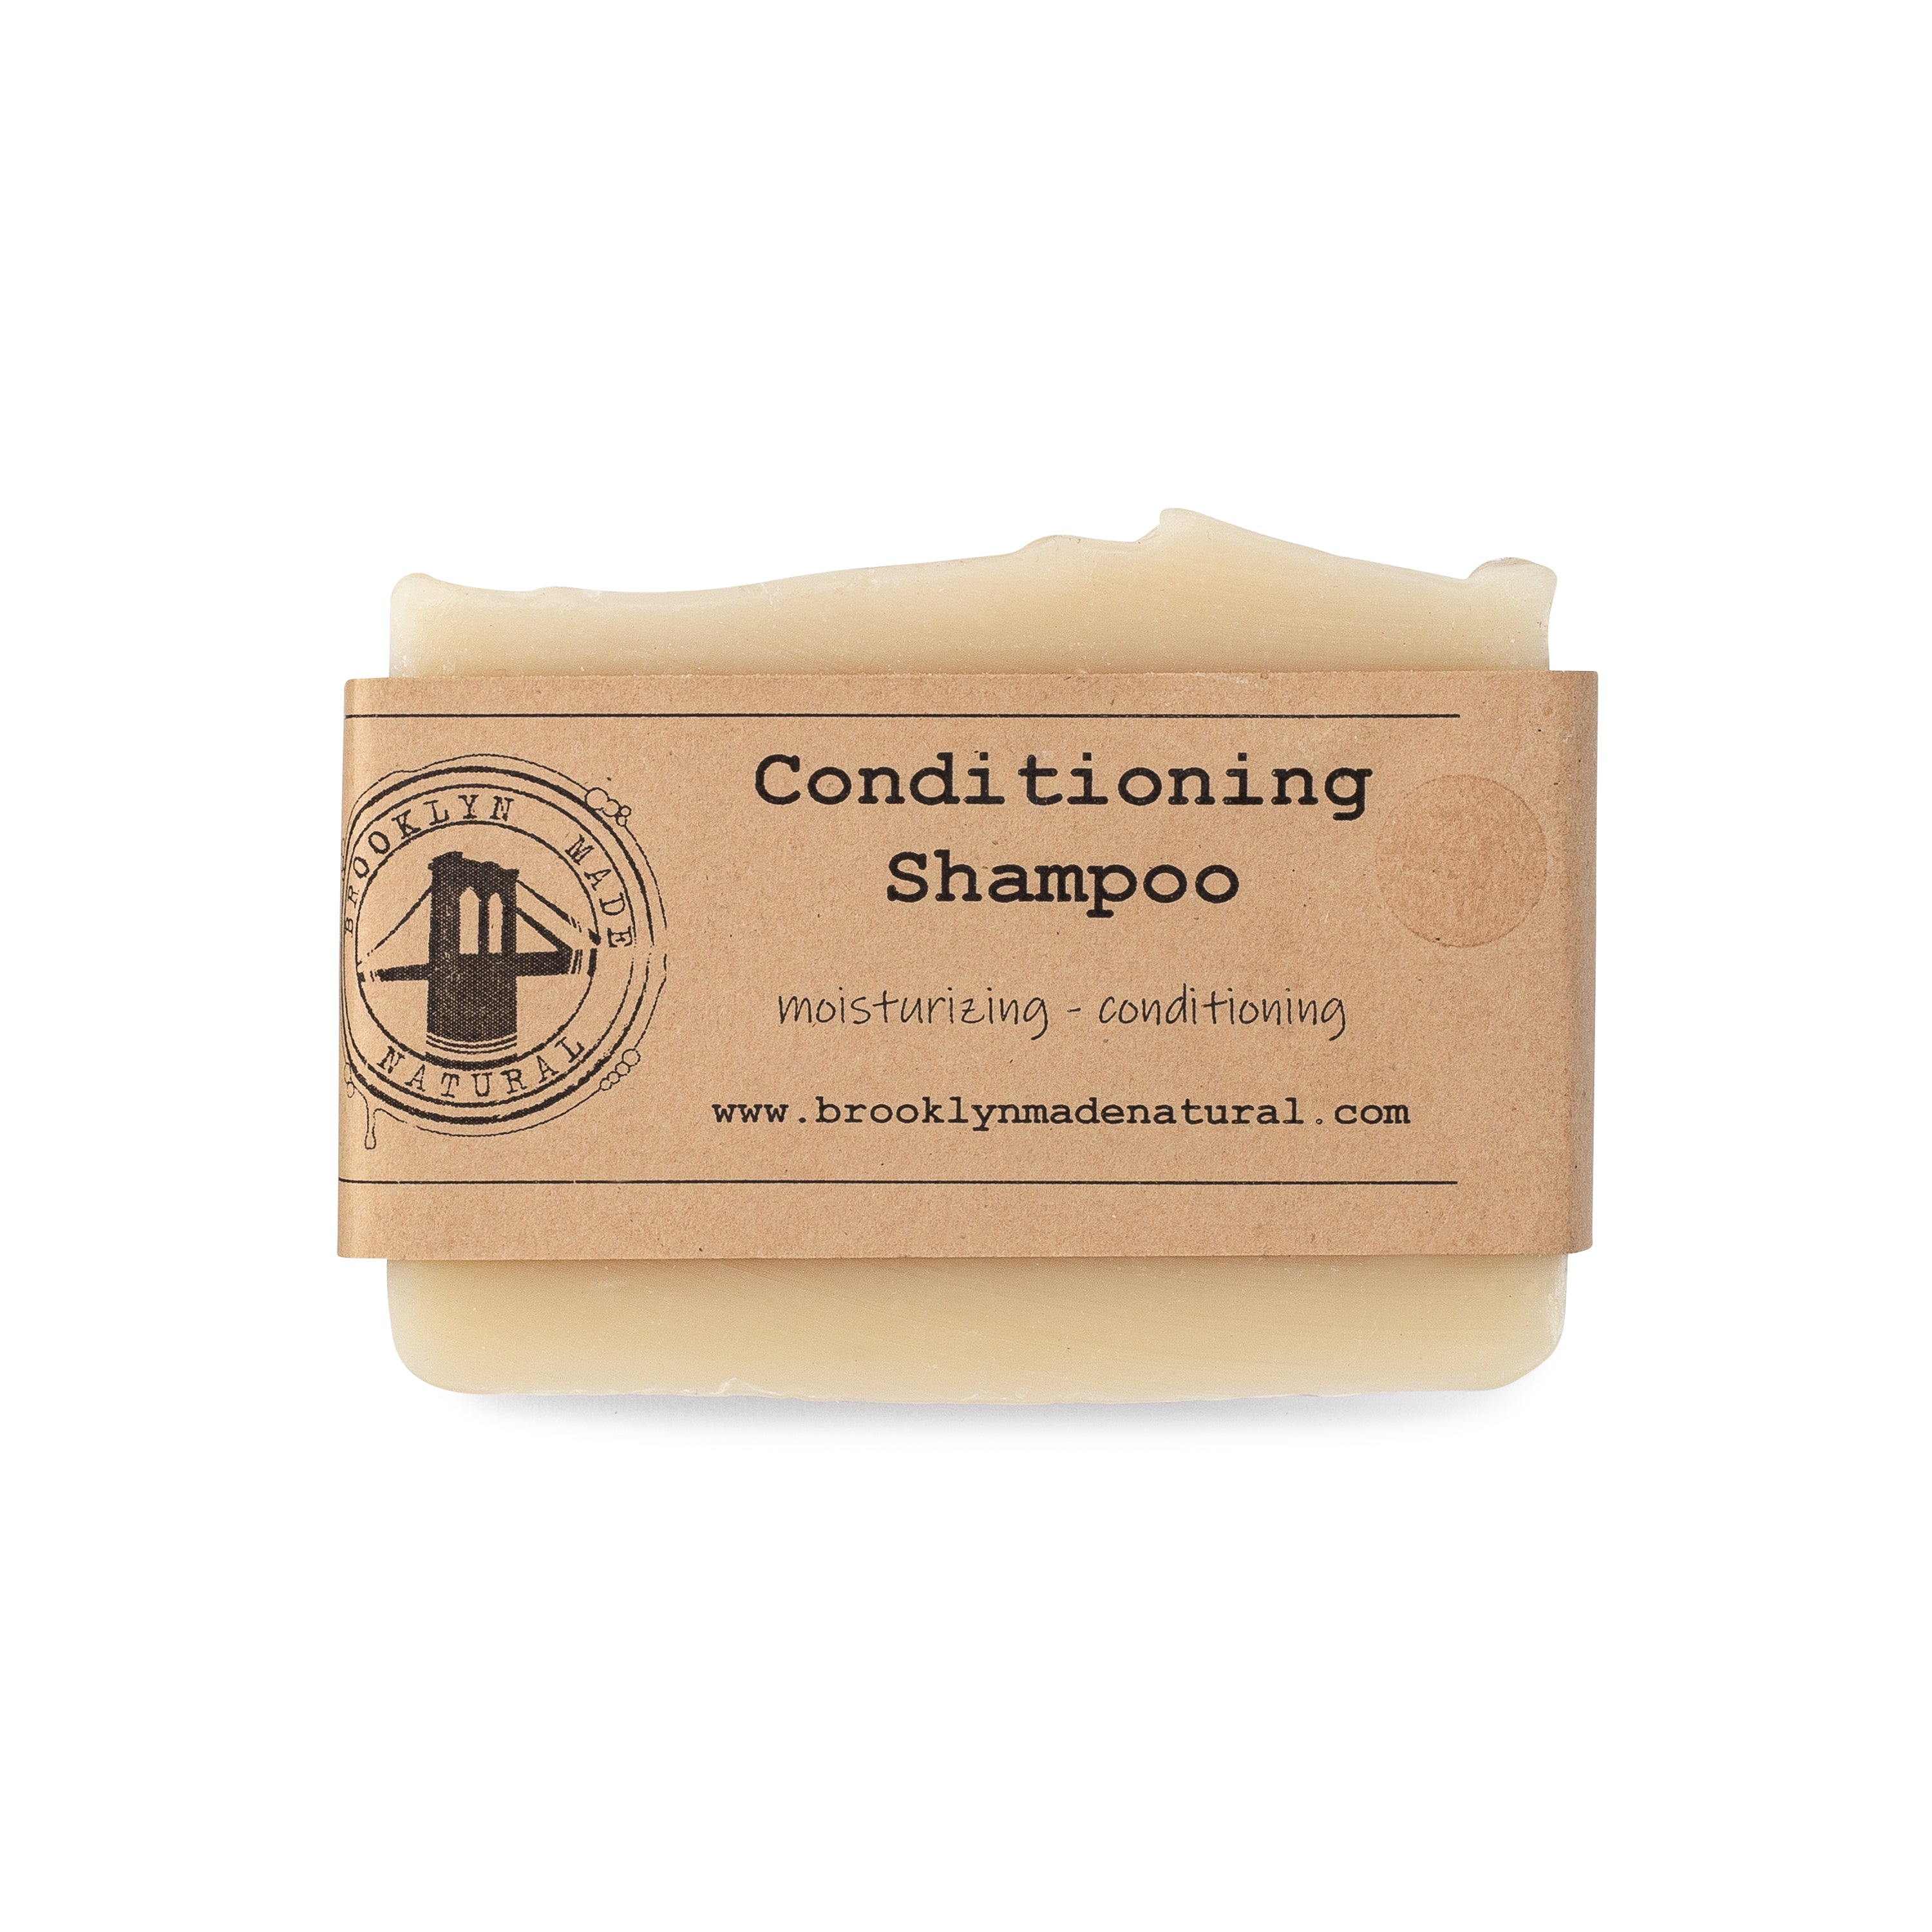 Vegan Conditioning Shampoo Bar